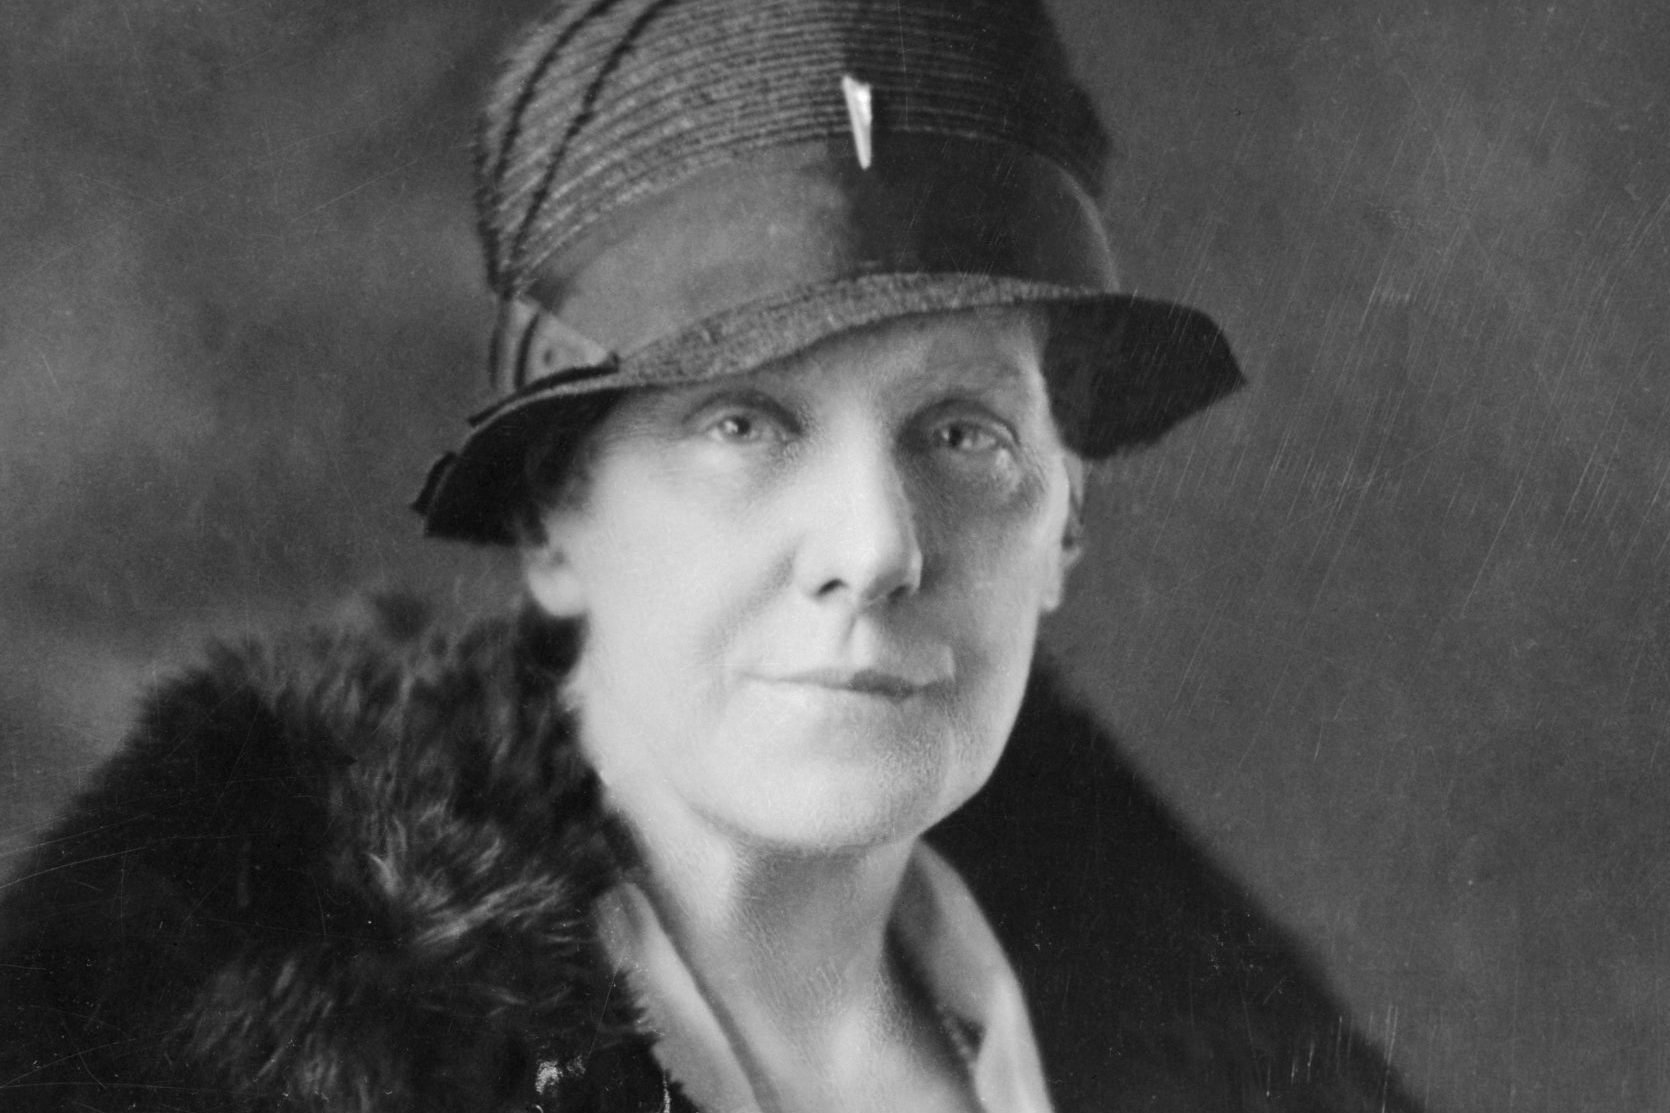 Founder of Mother's Day Anna M. Jarvis